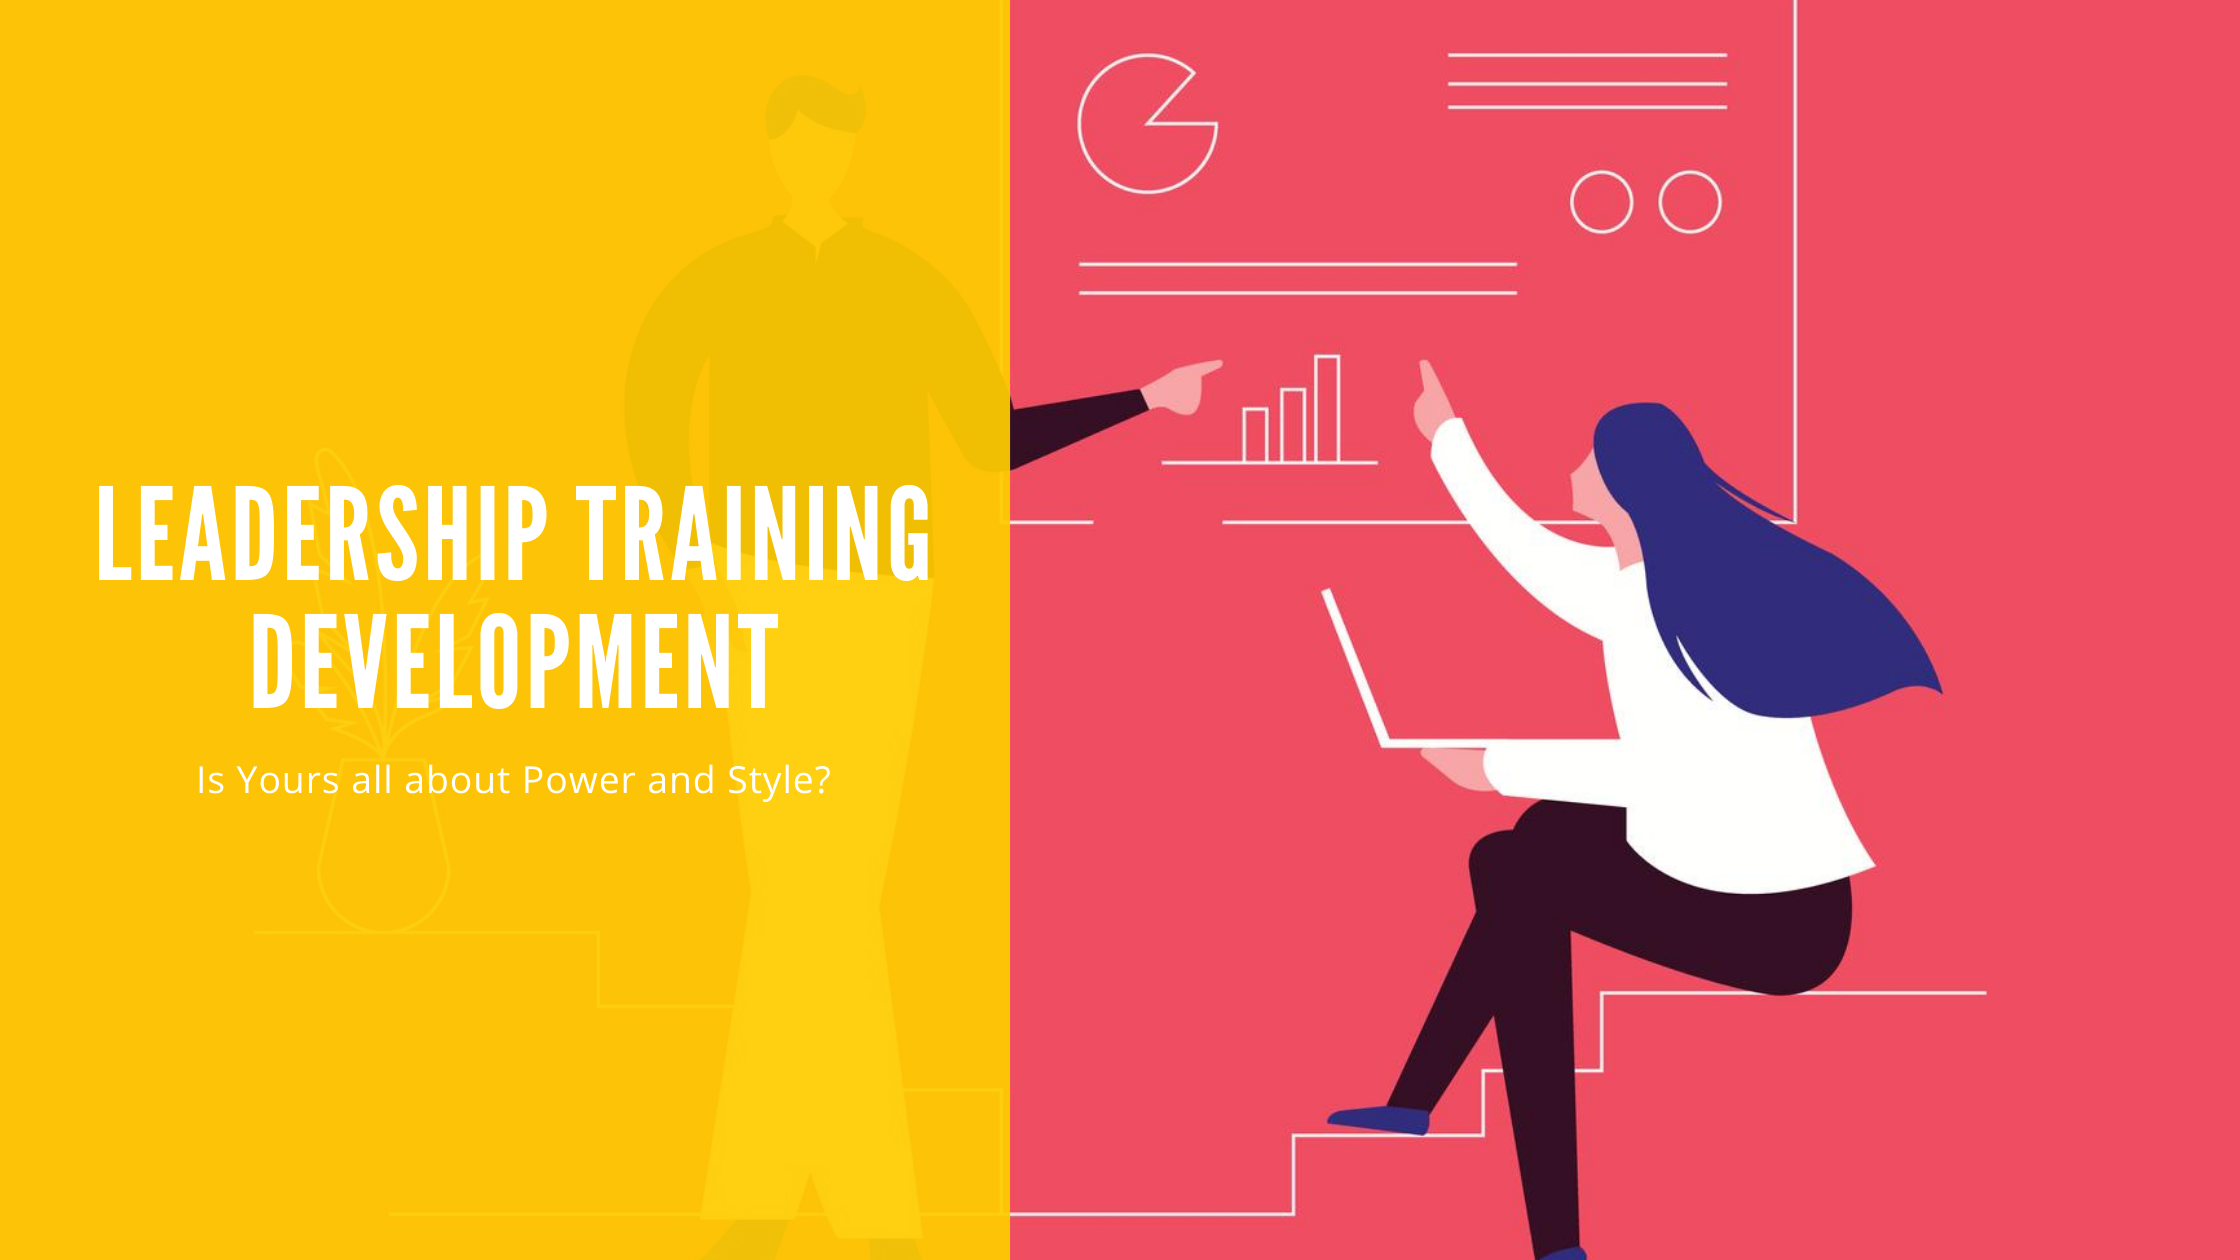 Leadership Training Development: Is Yours all about Power and Style?